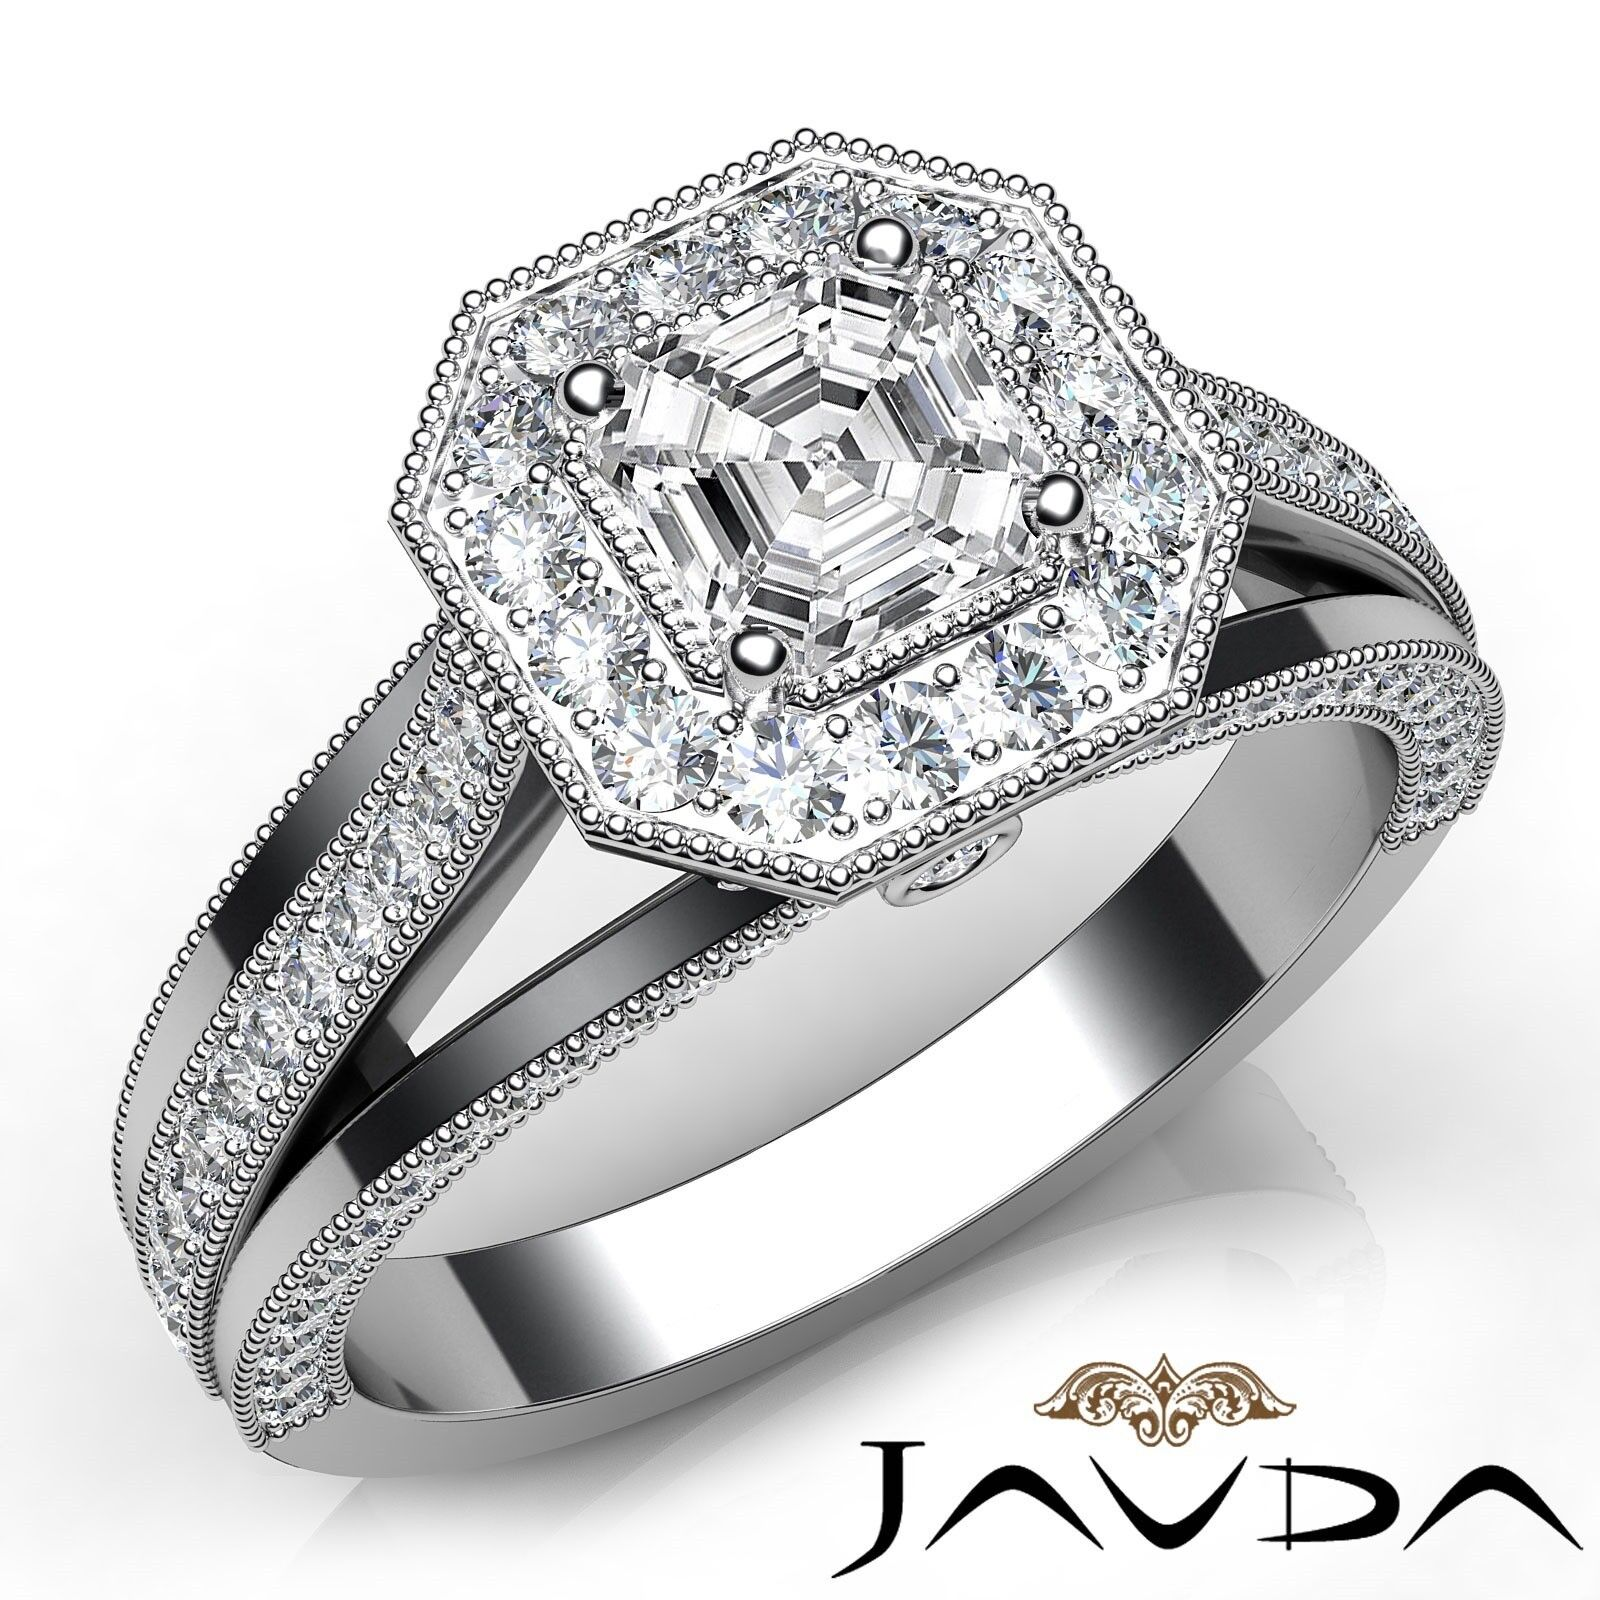 1.92ctw Trio Shank Milgrain Asscher Diamond Engagement Ring GIA I-VS1 White Gold